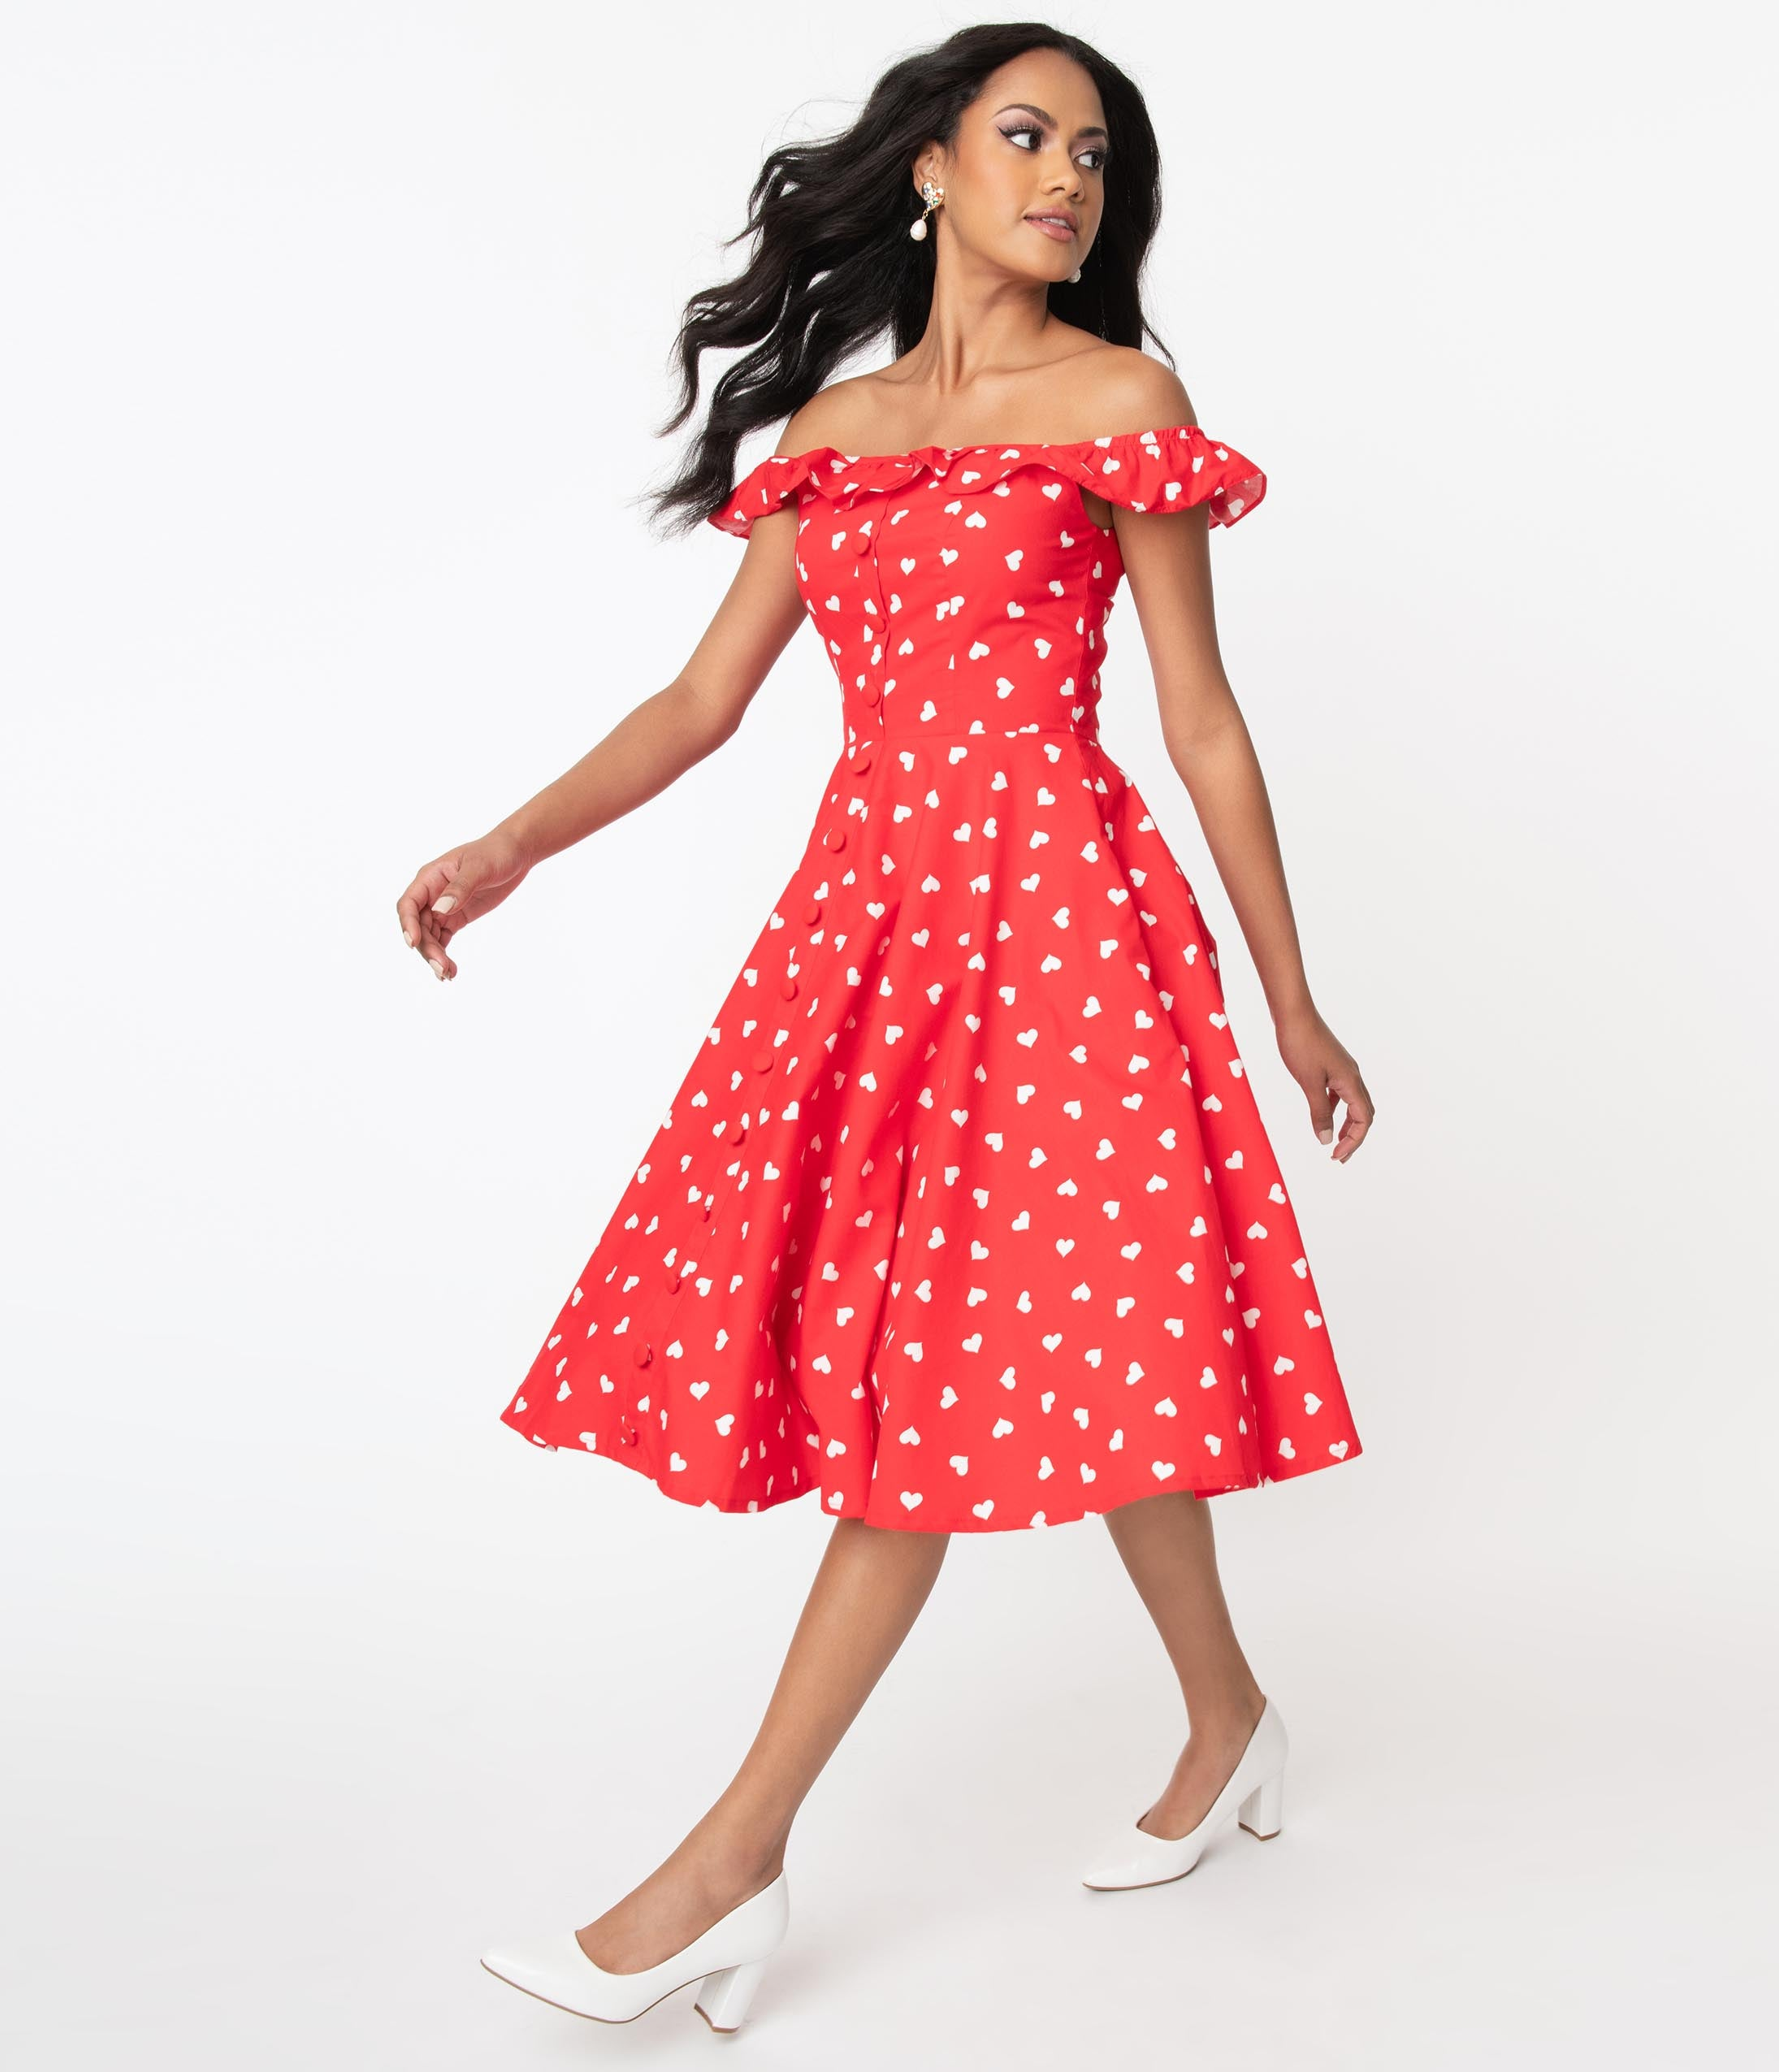 1950s Plus Size Fashion & Clothing History Red  White Heart Print Barbara Swing Dress $78.00 AT vintagedancer.com